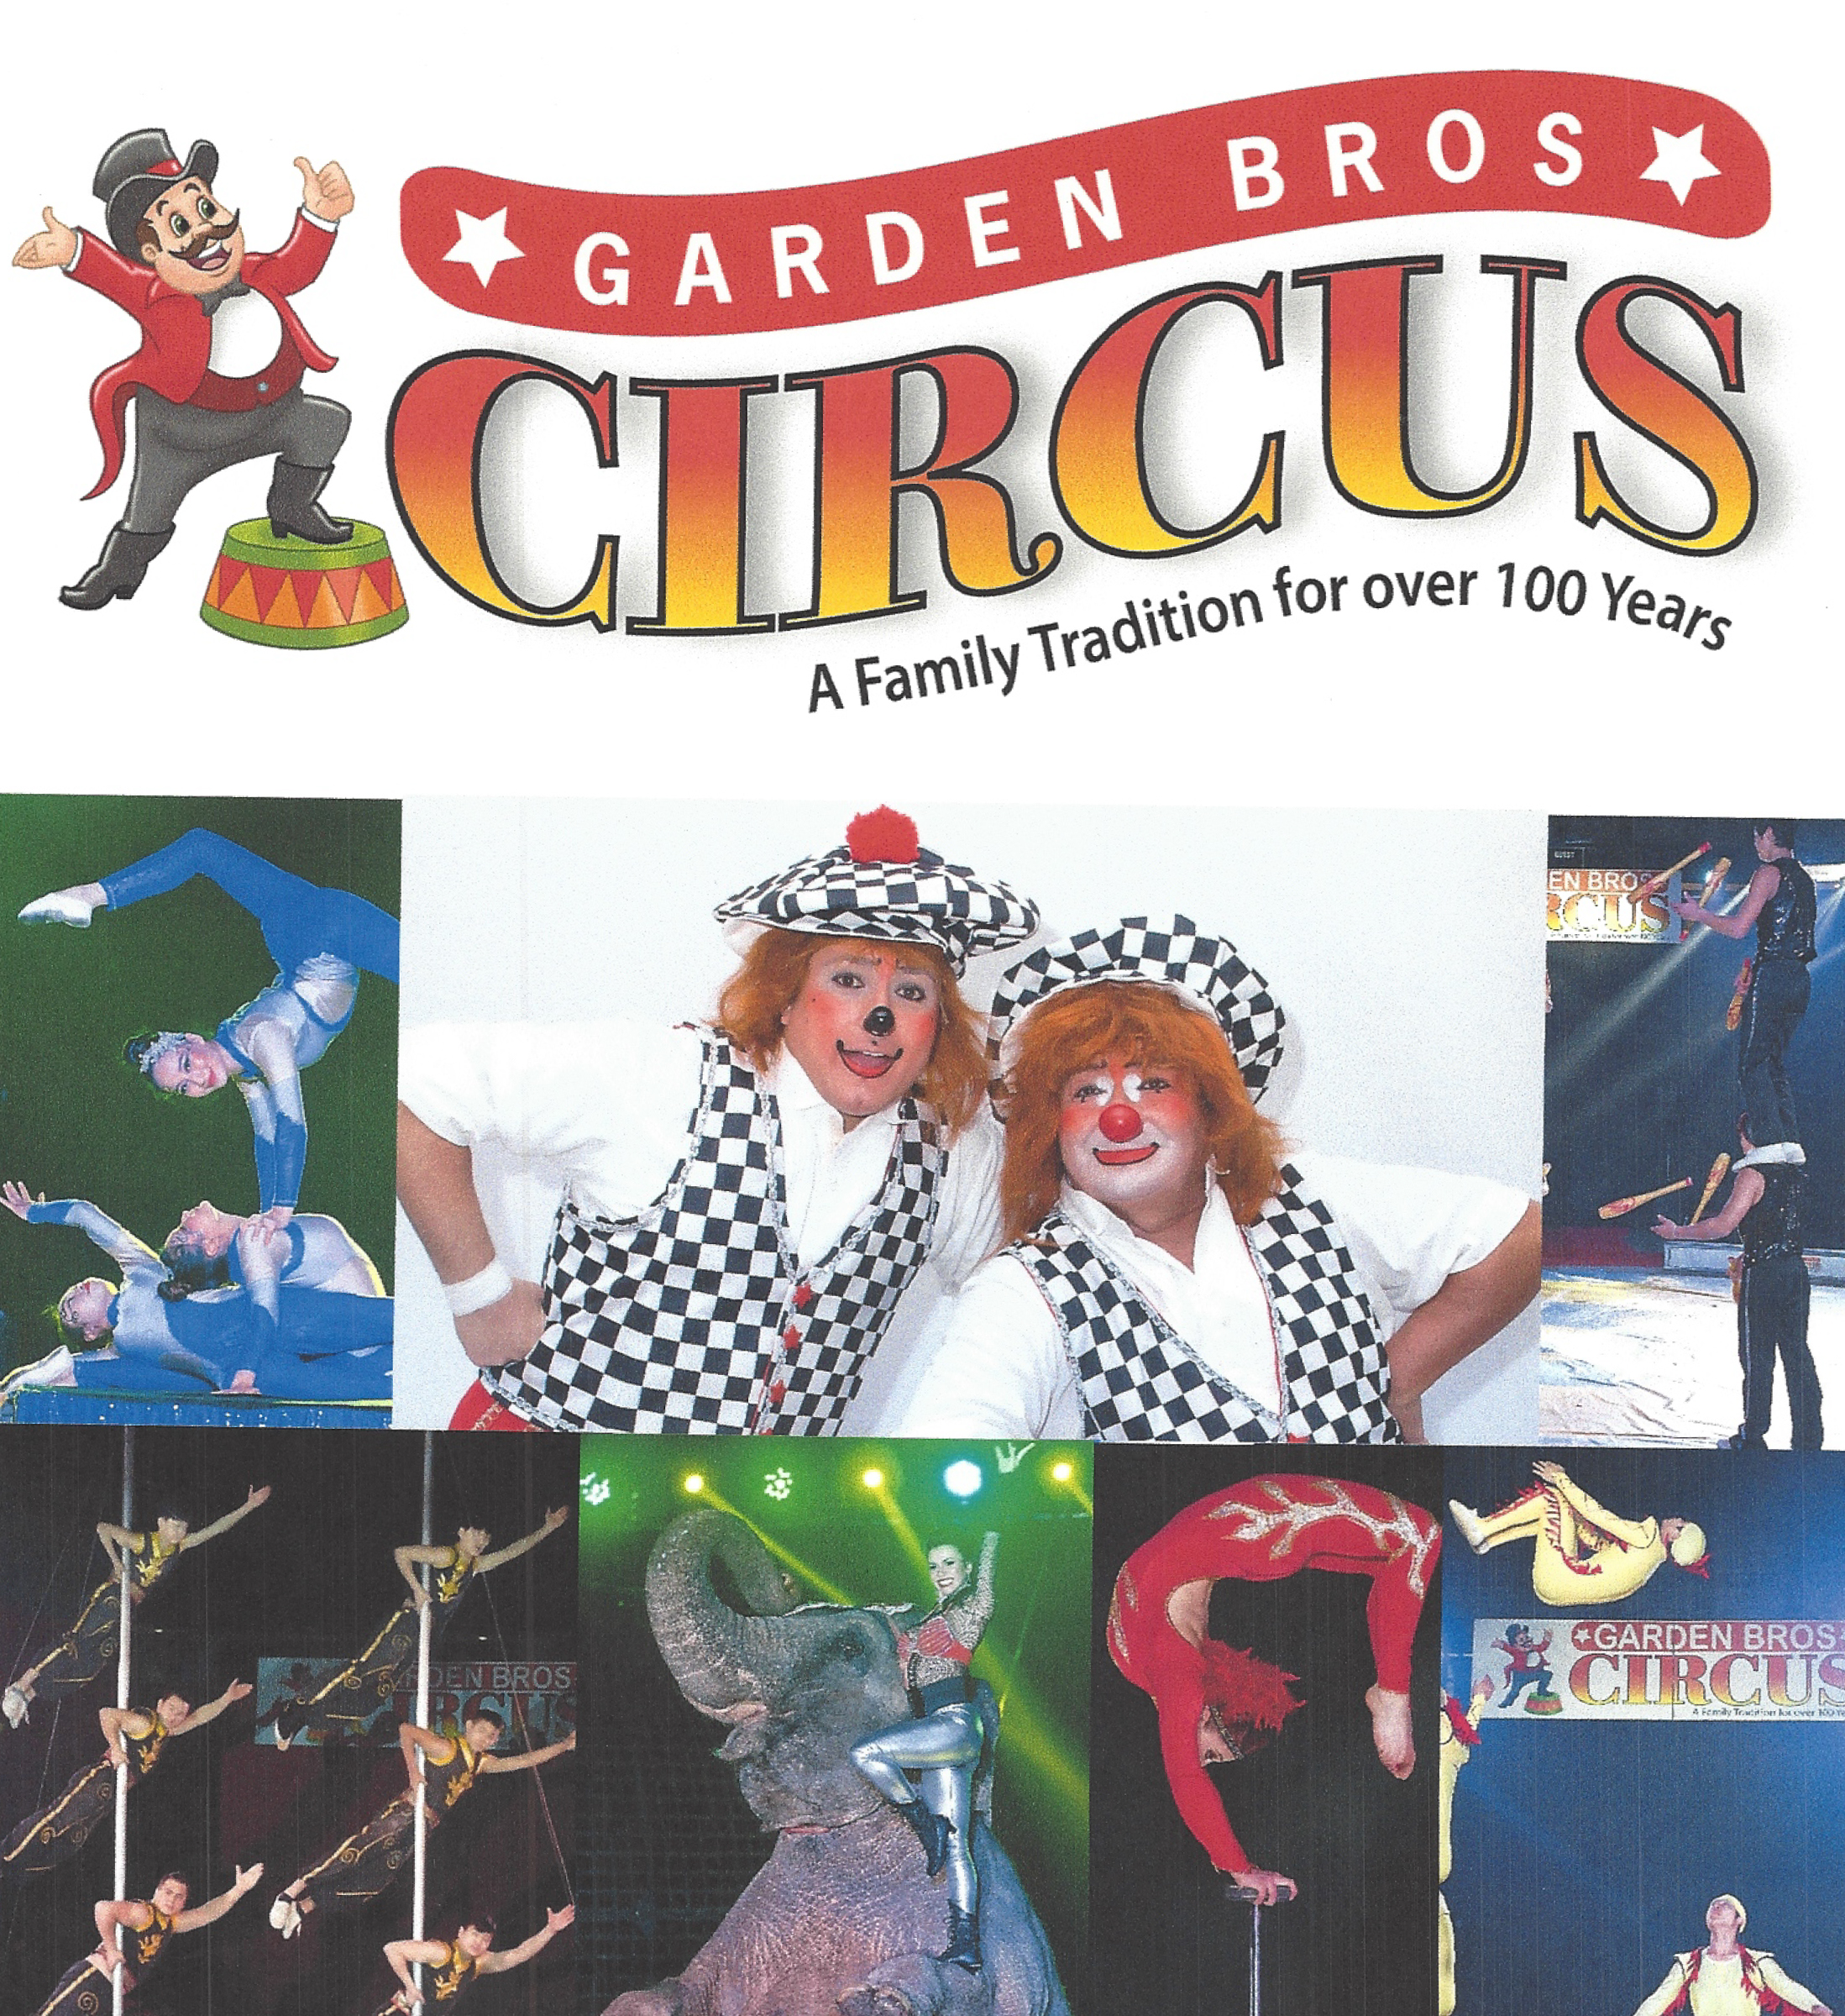 Spartanburg Memorial Auditorium Garden Brothers Circus